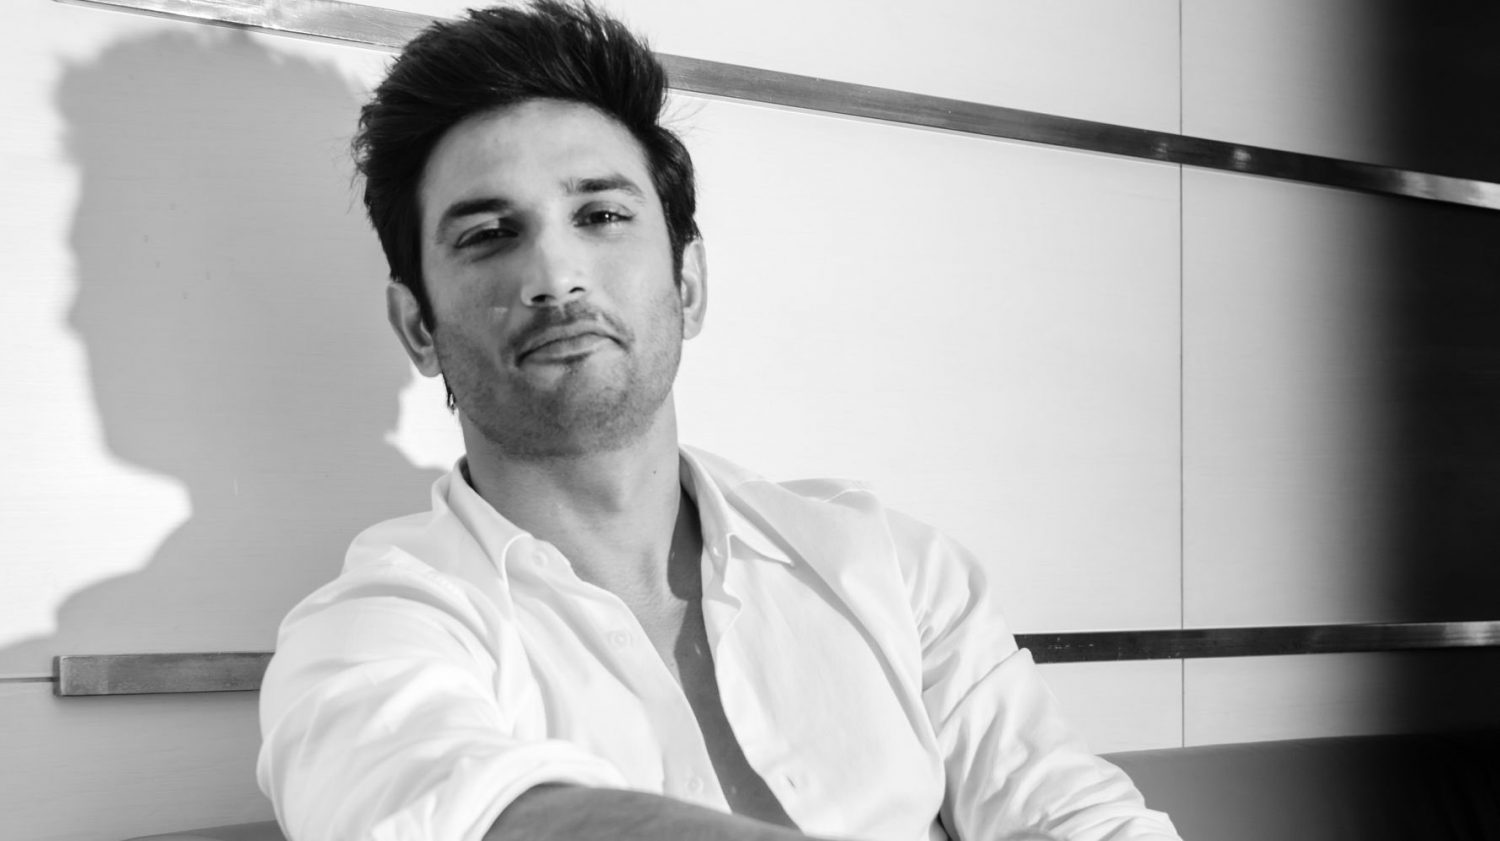 https://www.clubinfonline.com/2020/06/14/bollywood-actor-sushant-singh-rajput-commits-suicide-at-mumbai/